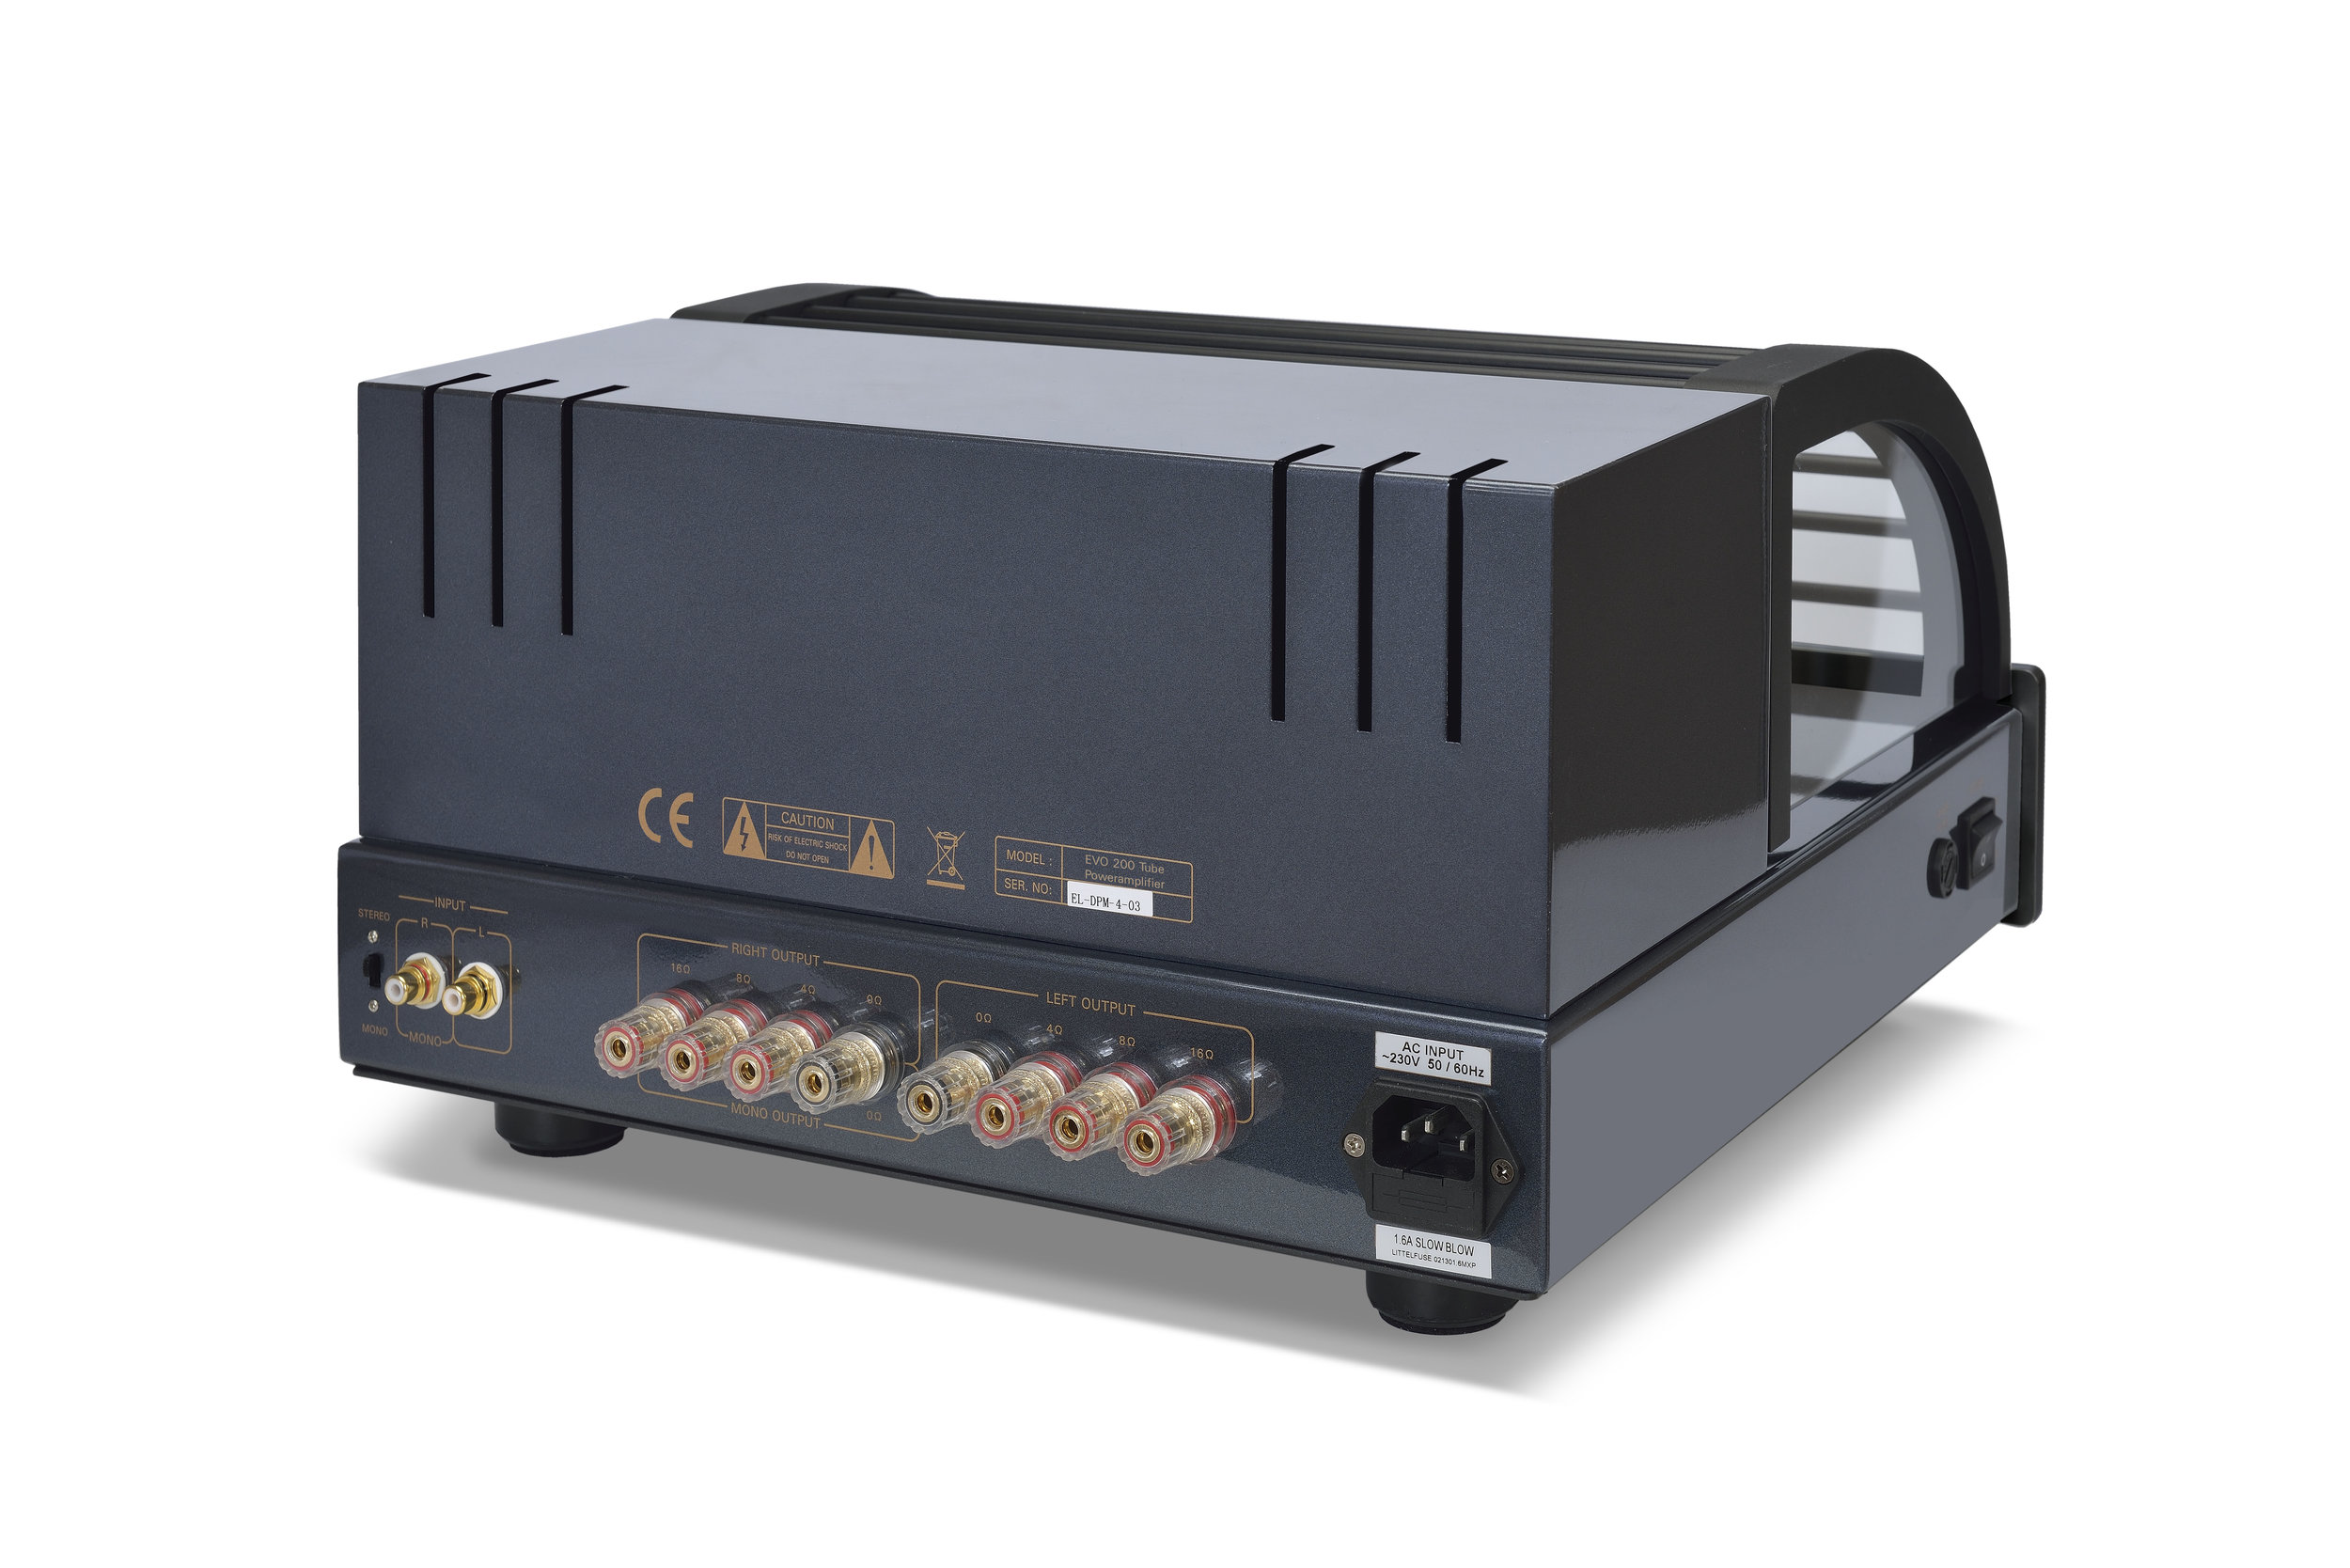 077b - PrimaLuna Evo 200 Tube Poweamplifier - black - back - slanted - white background.jpg